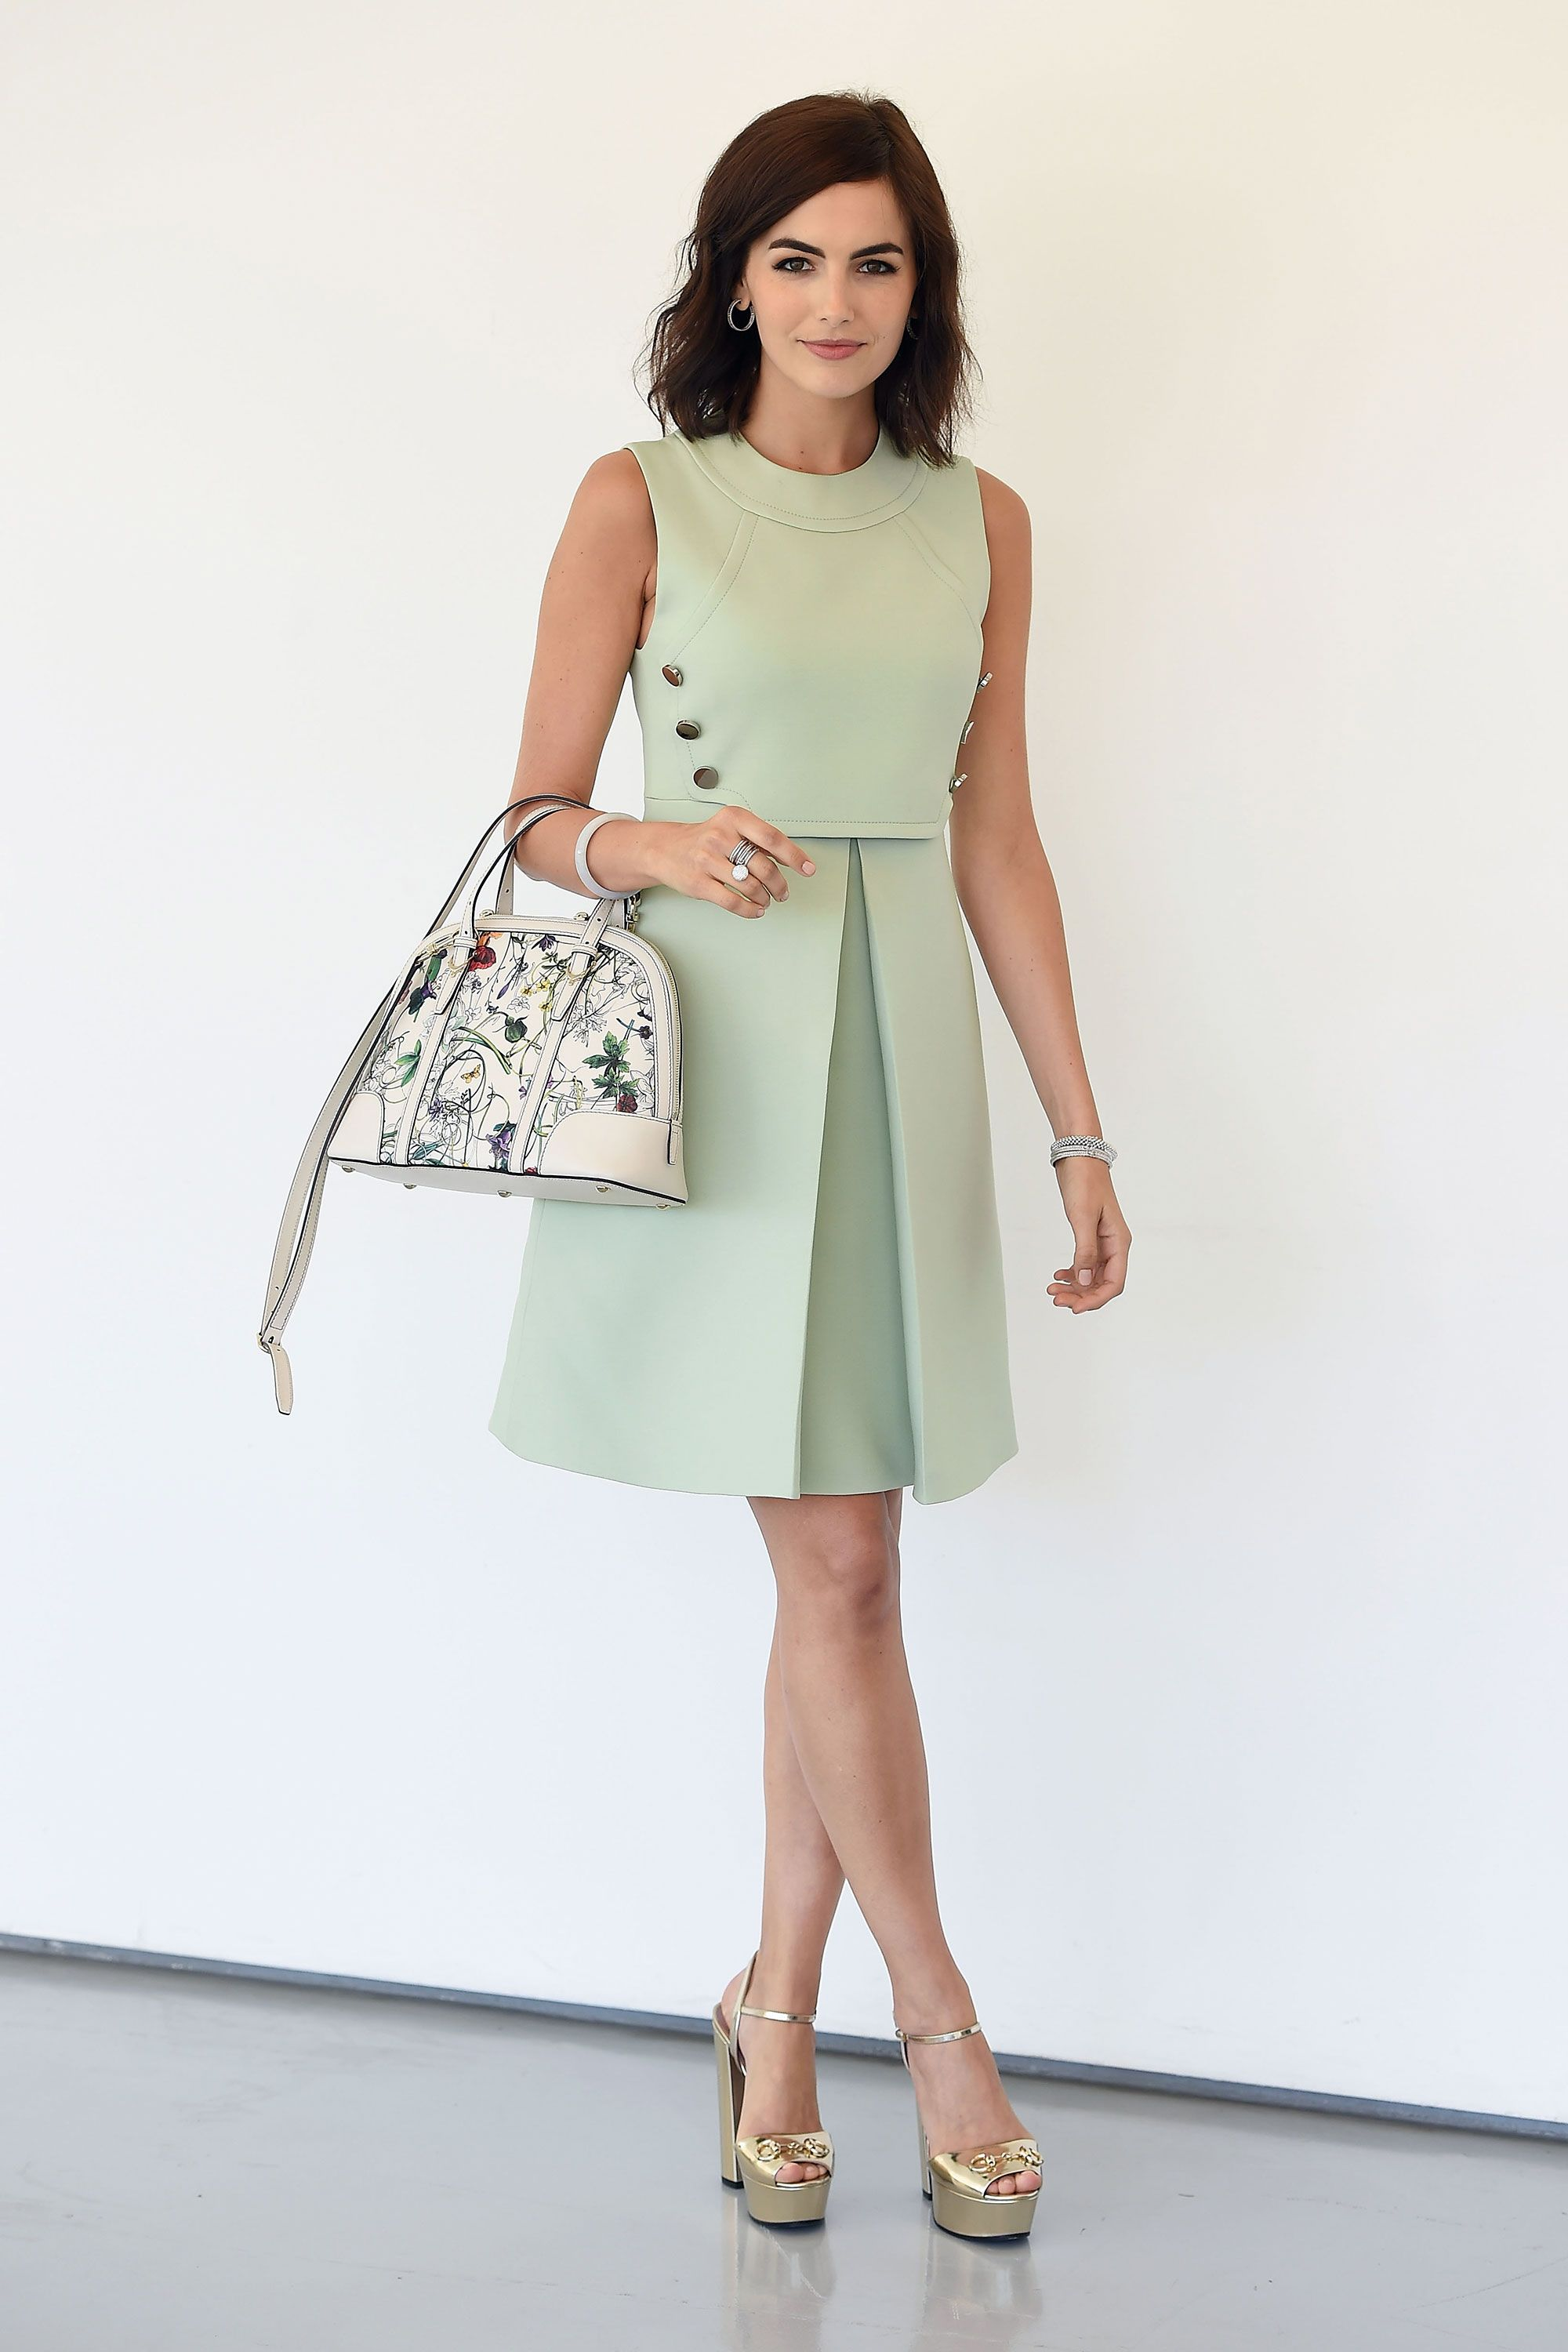 best images about dress on pinterest resorts vintage style and